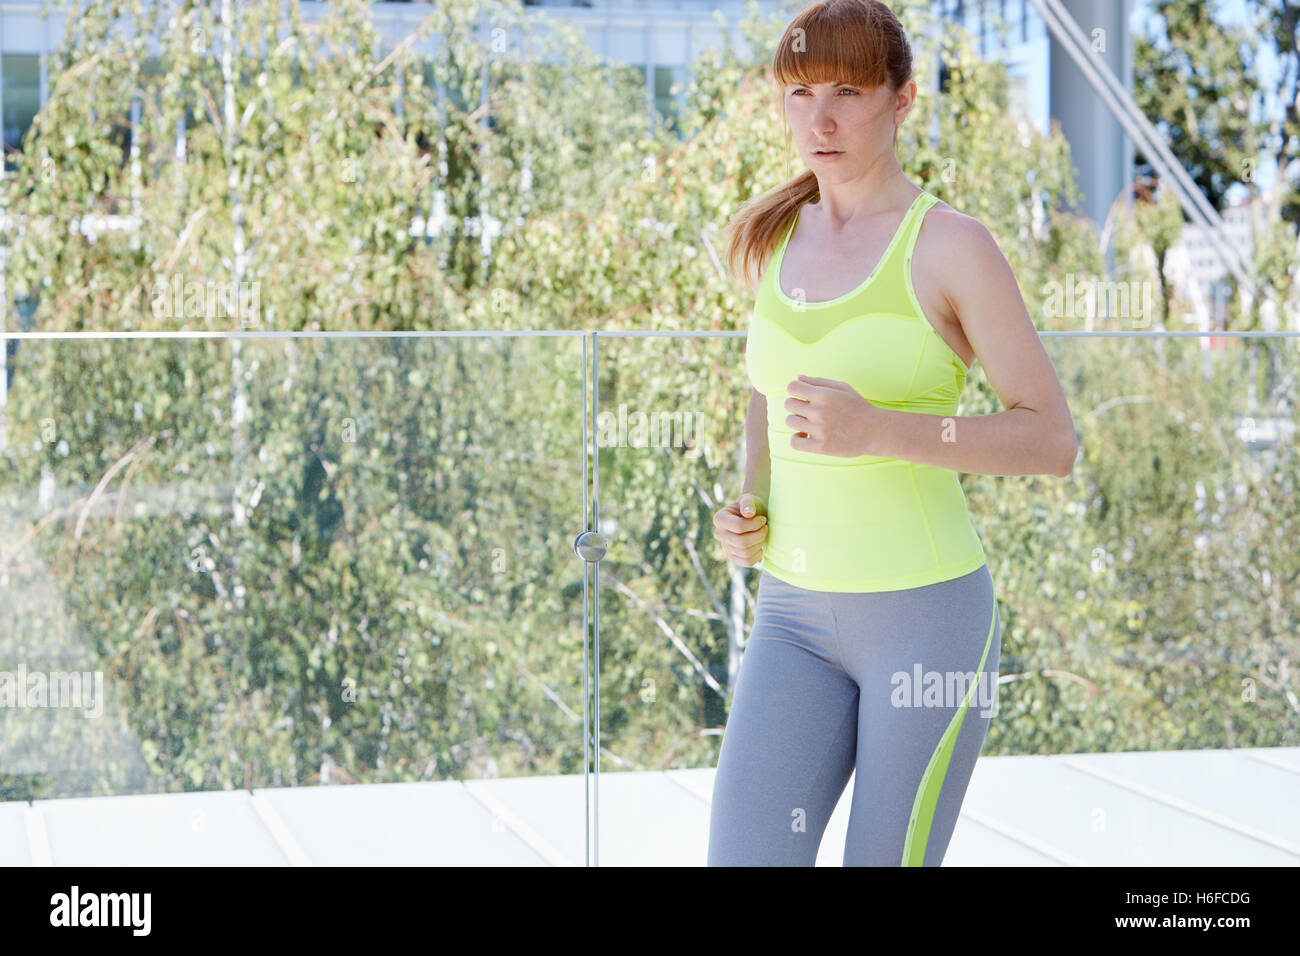 Woman running in modern city in summer with trees background - Stock Image